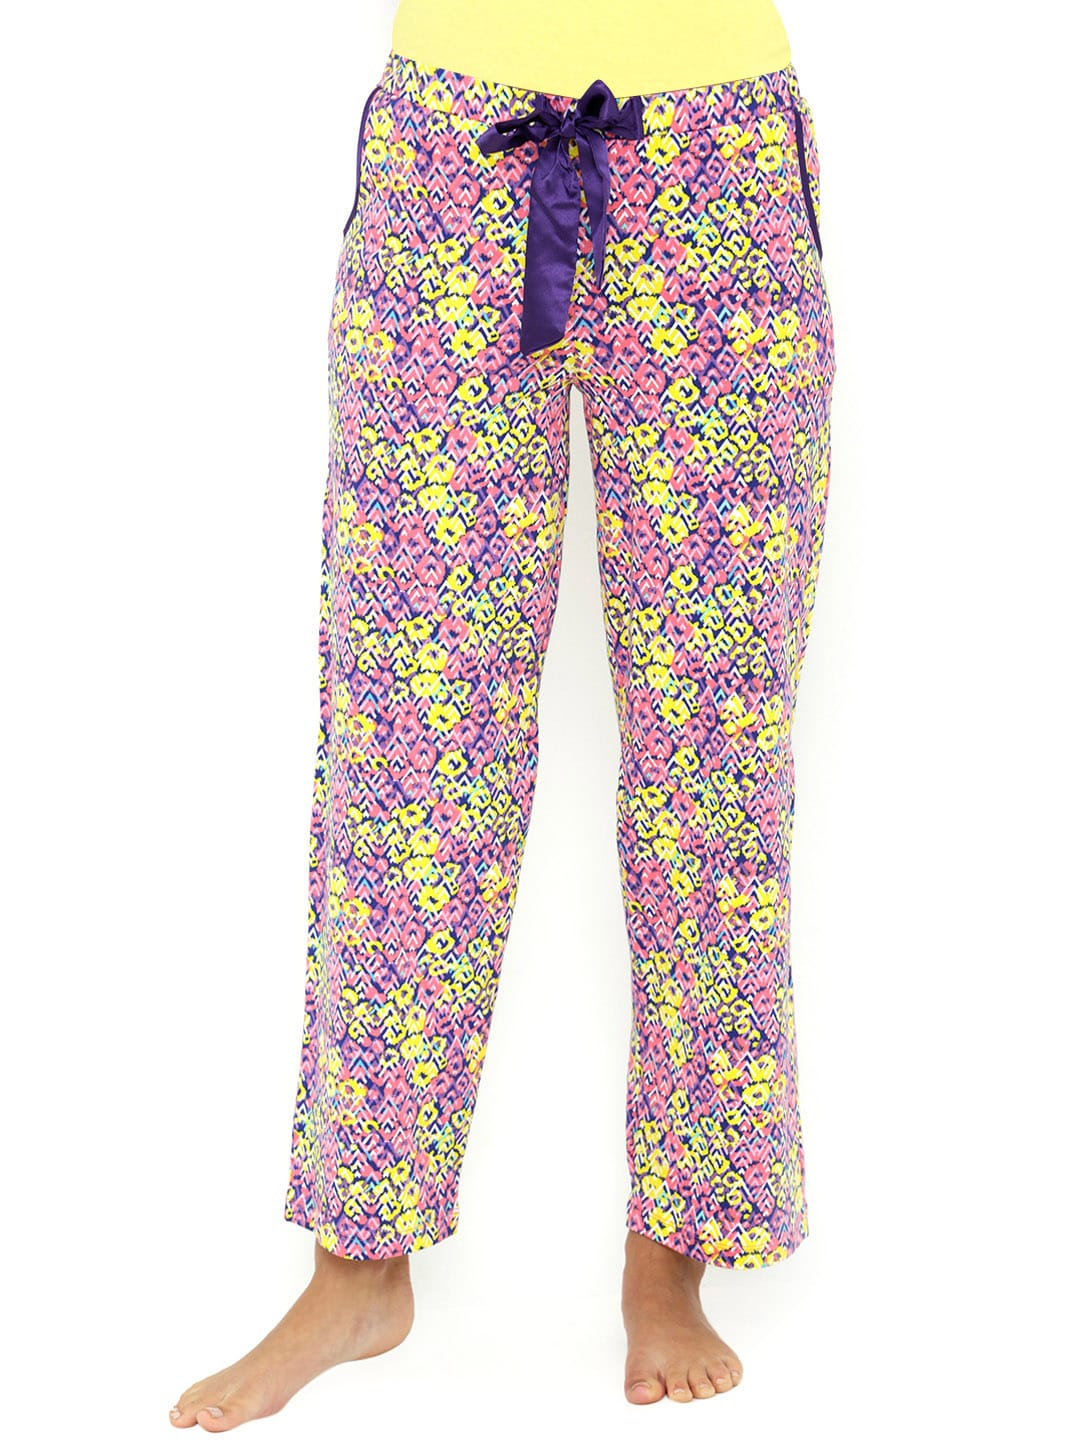 Prettysecrets Lounge Pants - Buy Prettysecrets Lounge Pants online in India 4ce416208